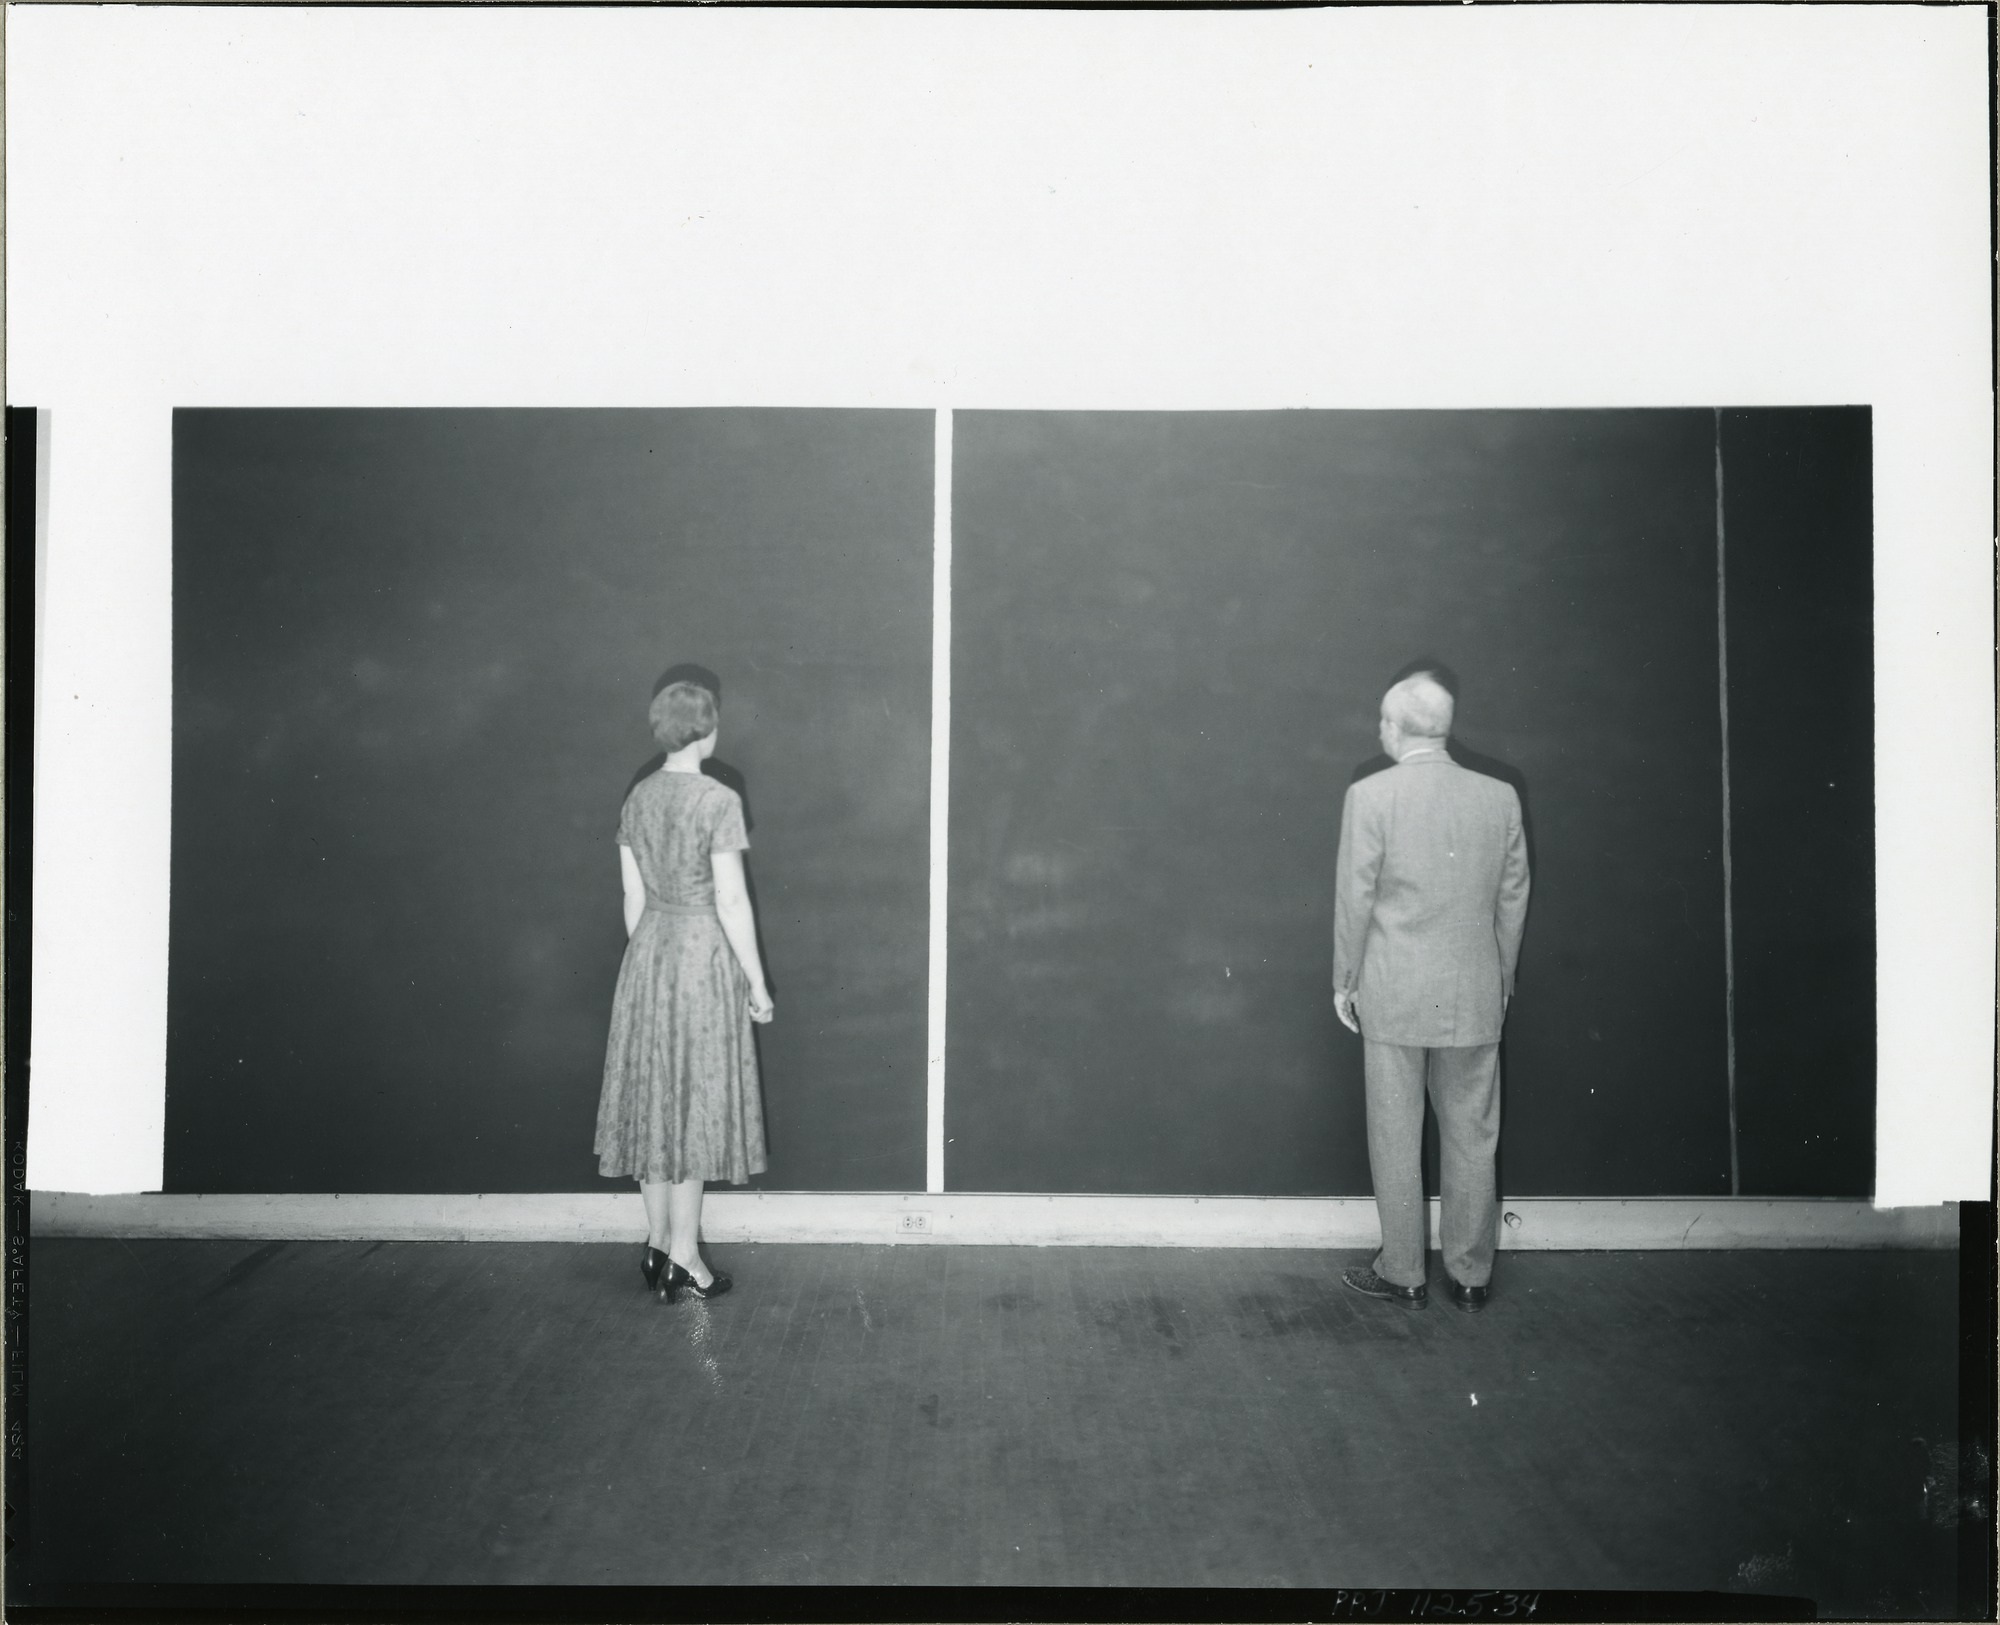 barnett-newman-and-unidentified-woman-standing-in-front-of-22cathedra22-in-his-front-street-studio-new-york-1958-photographed-by-peter-a-juley-peter-a-juley-son-collecti.jpg